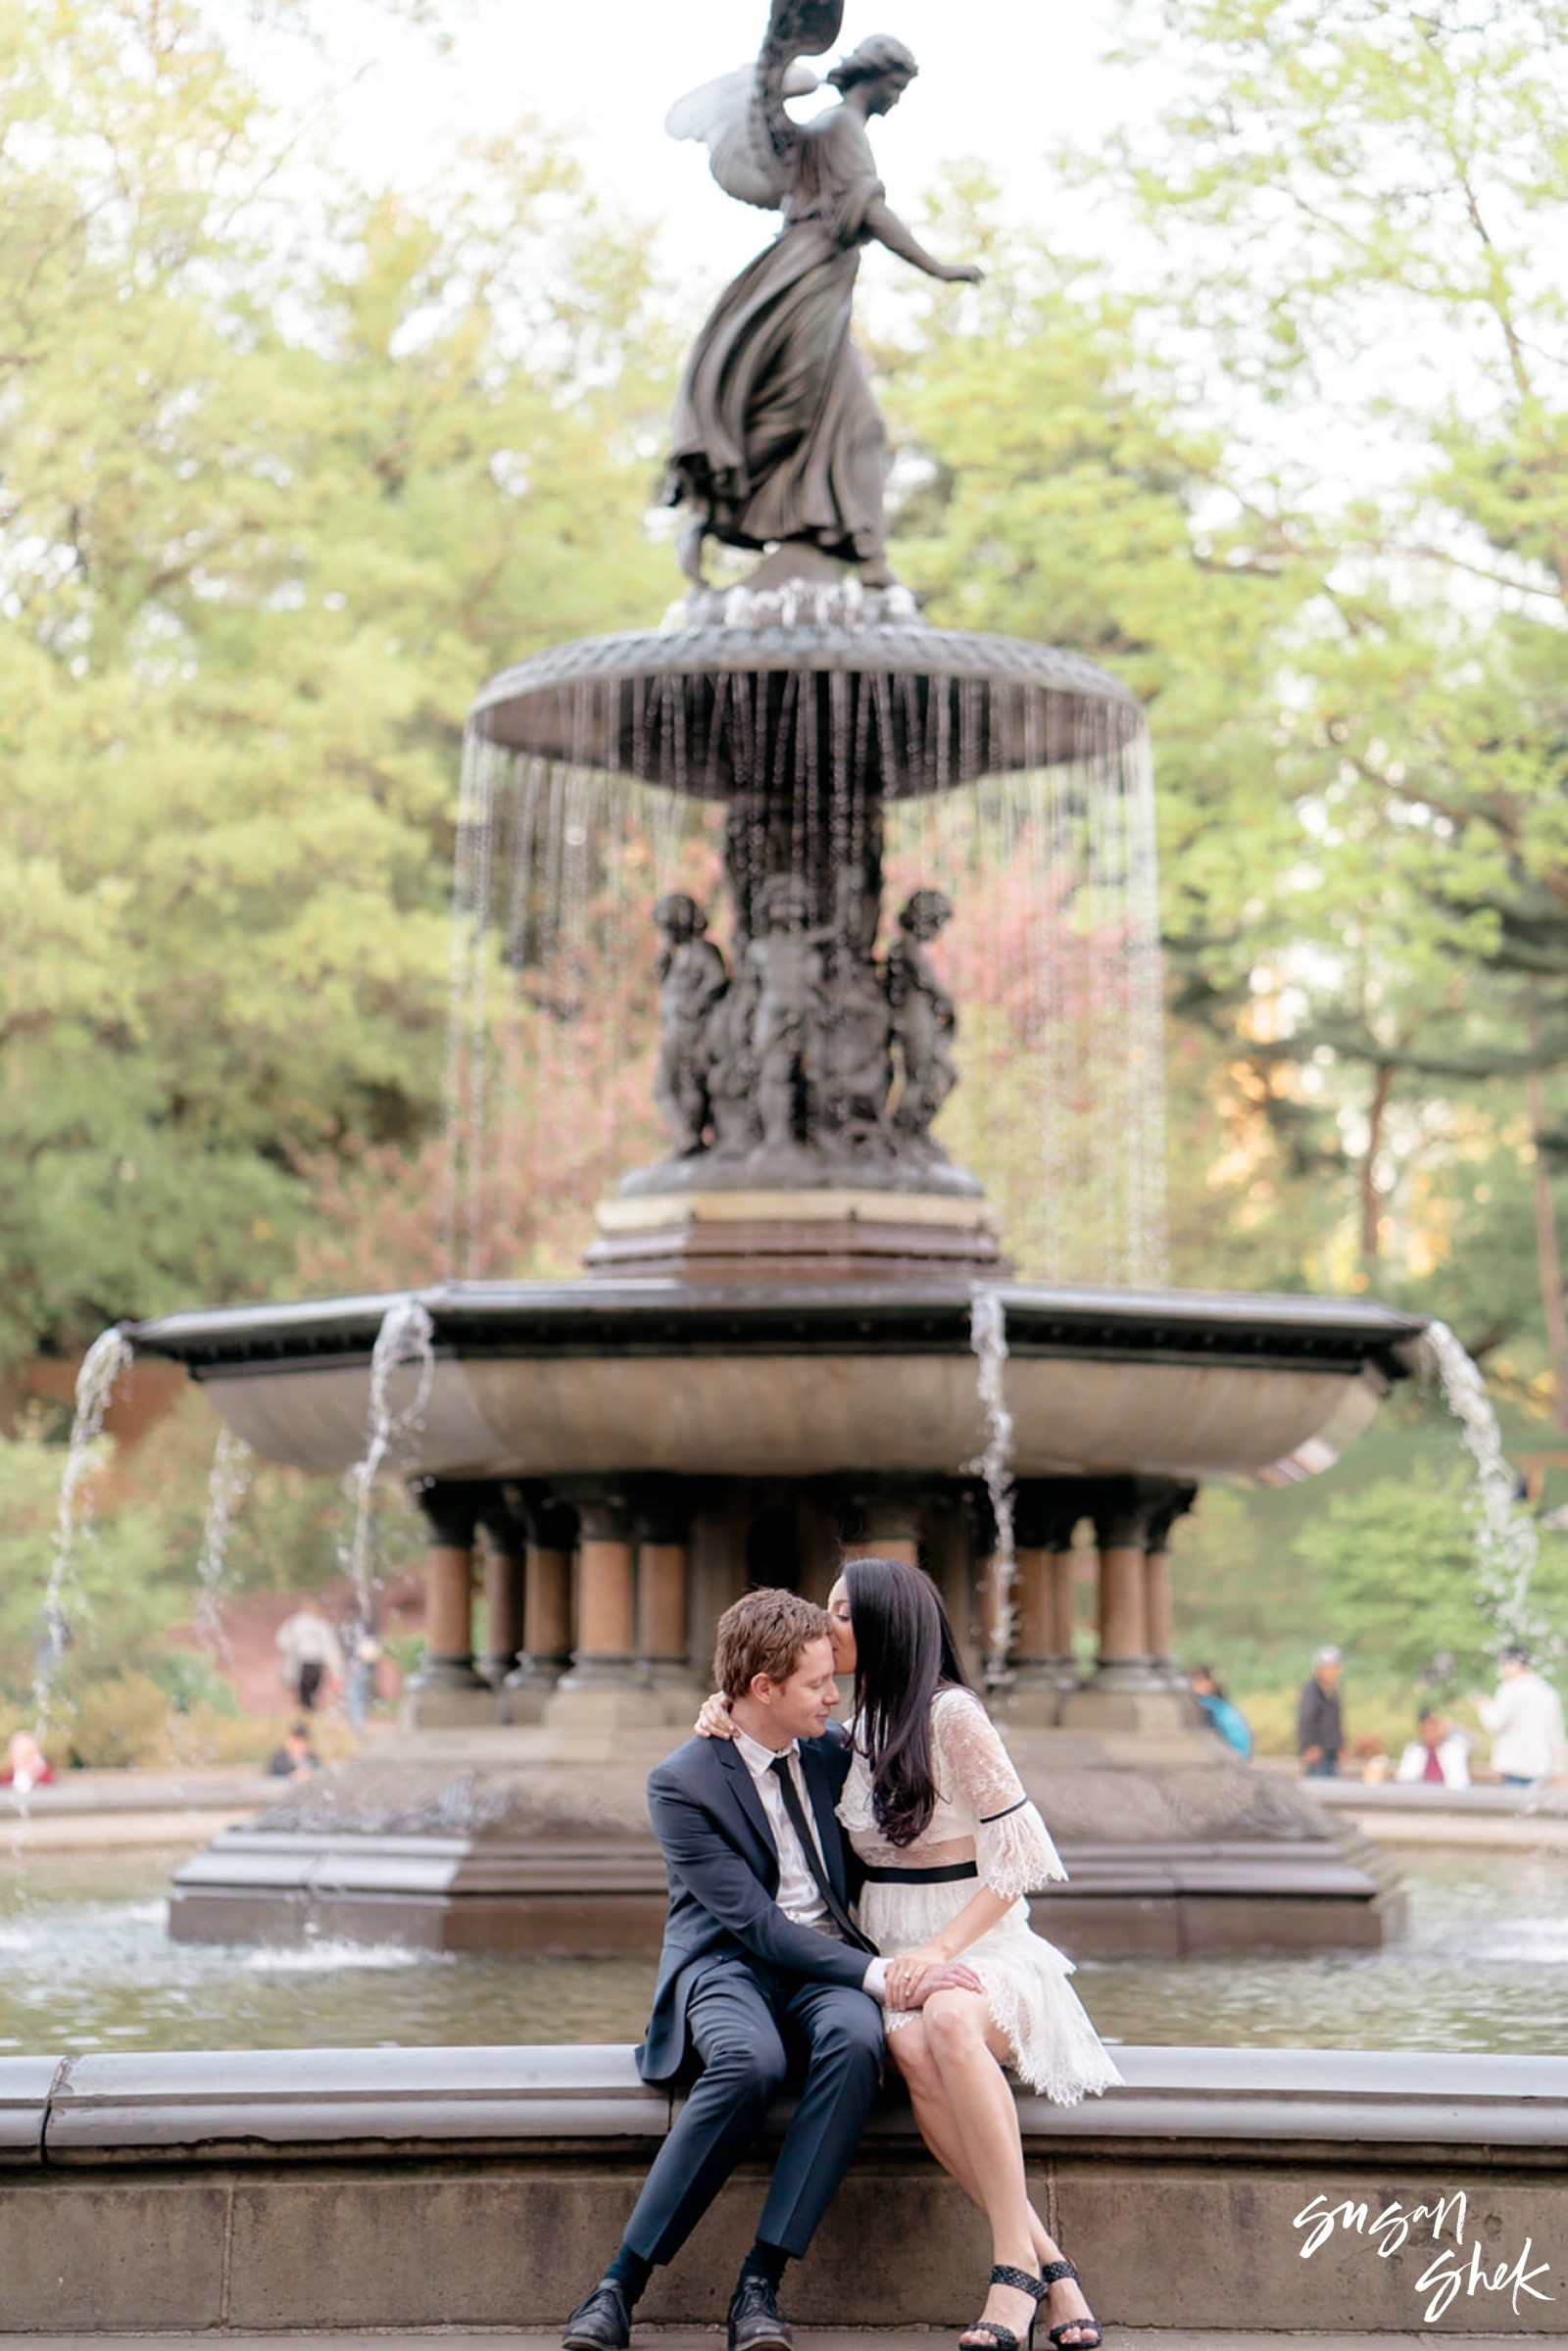 Bethesda Fountain in Central Park, Engagement Shoot, NYC Engagement Photographer, Engagement Session, Engagement Photography, Engagement Photographer, NYC Wedding Photographer